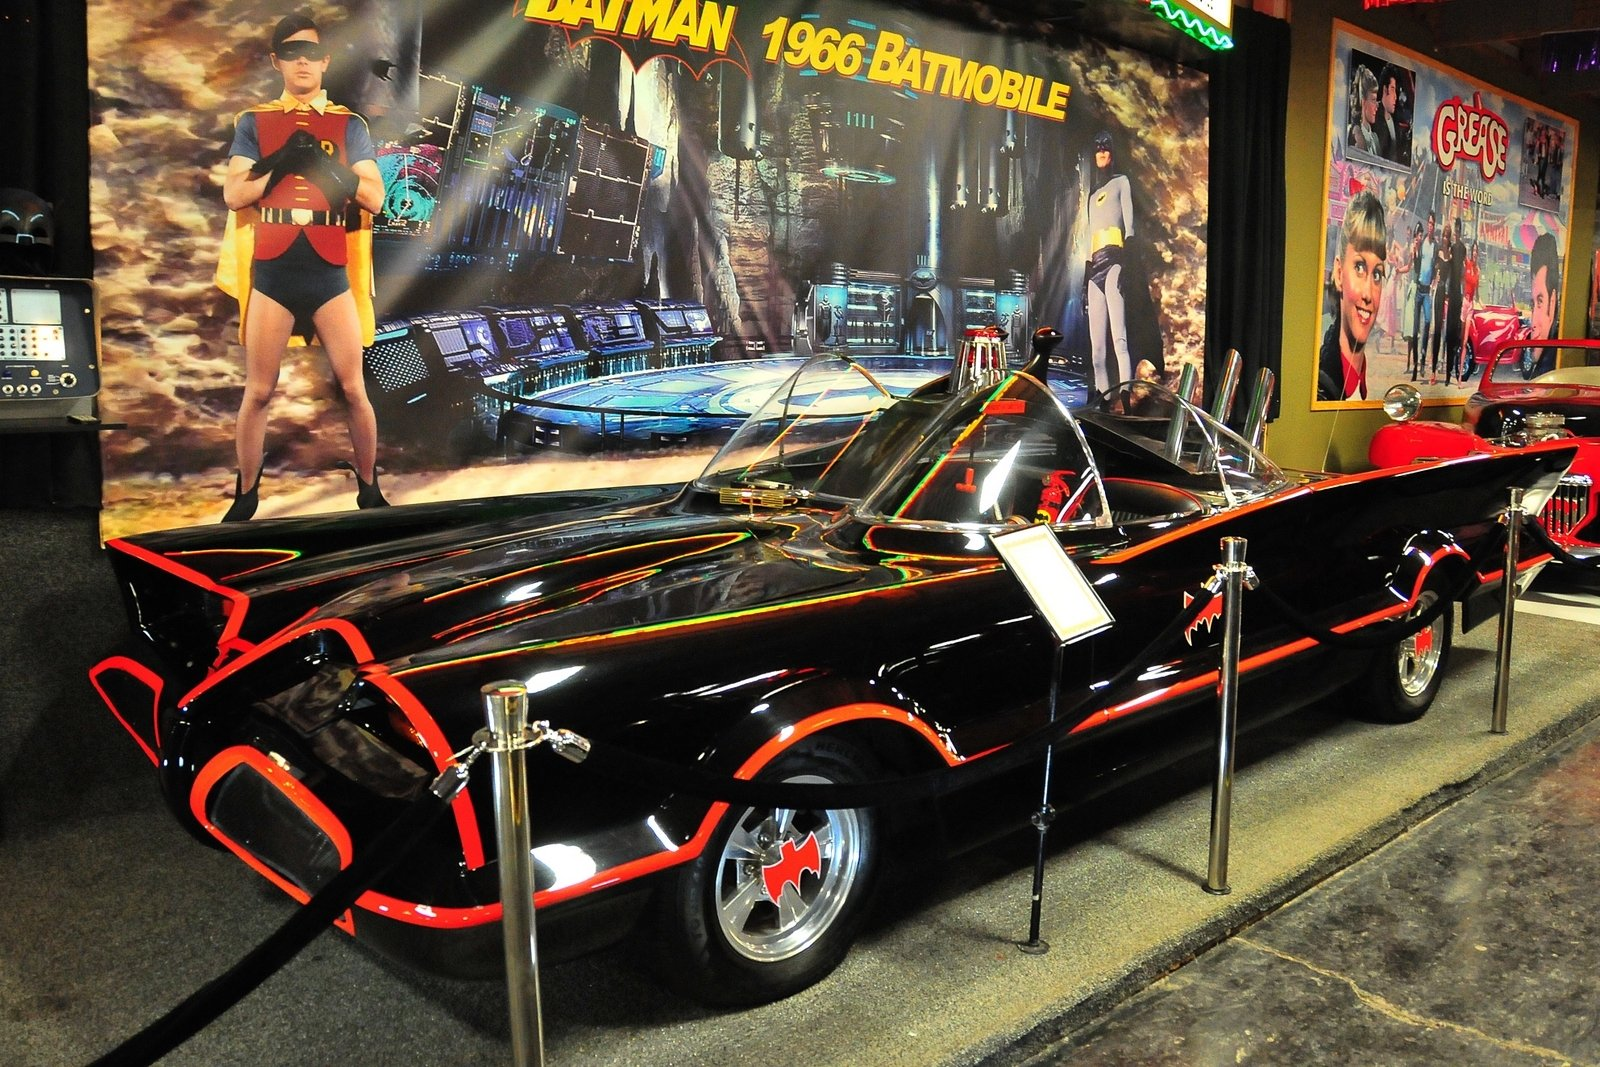 [Image: 1966-batmobile-adam-west]